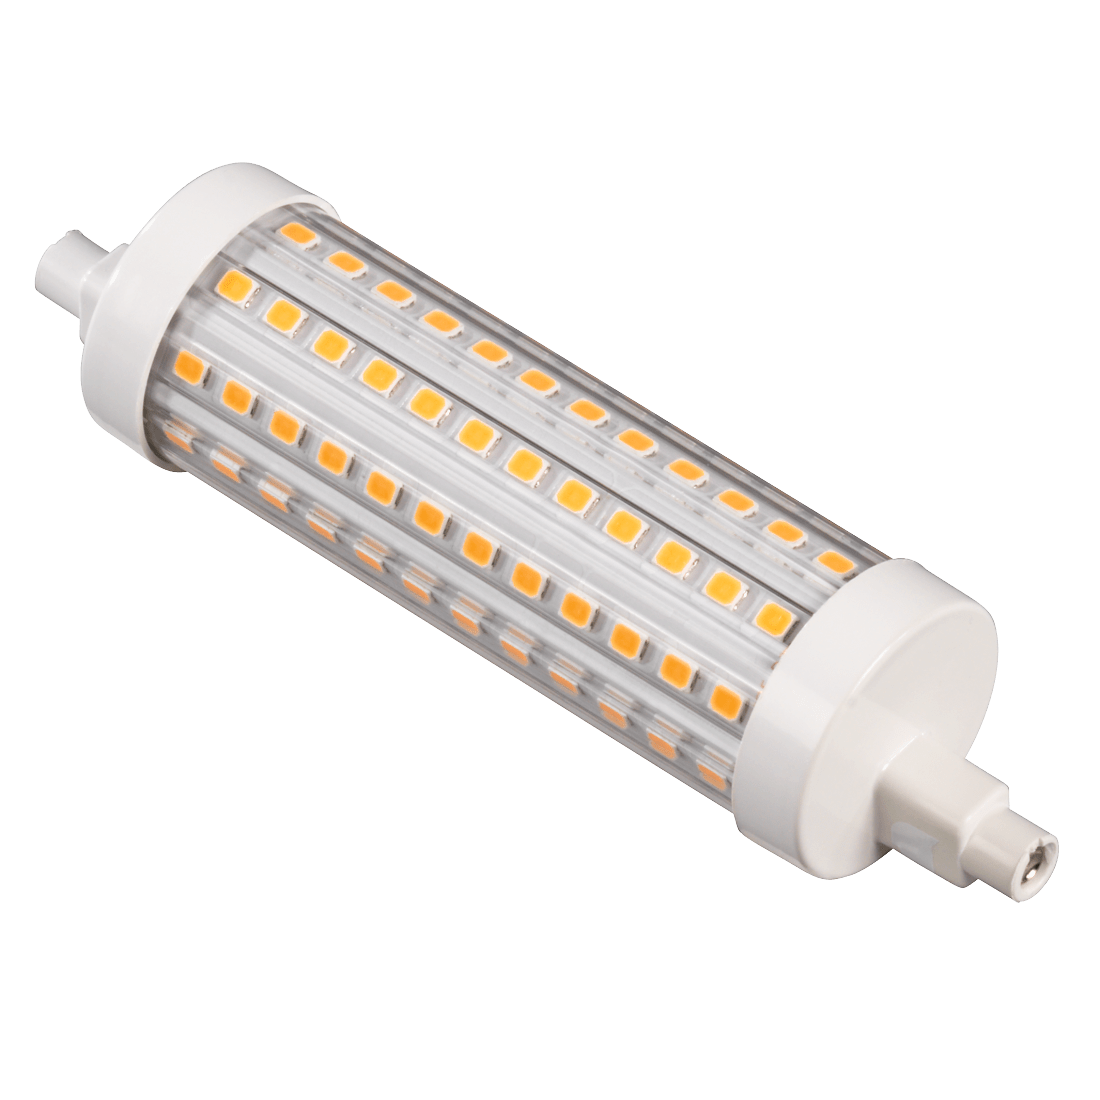 R7s Led Dimmable 00112580 Xavax Led Bulb R7s 2000 Lm Replaces 125 W Tube Warm